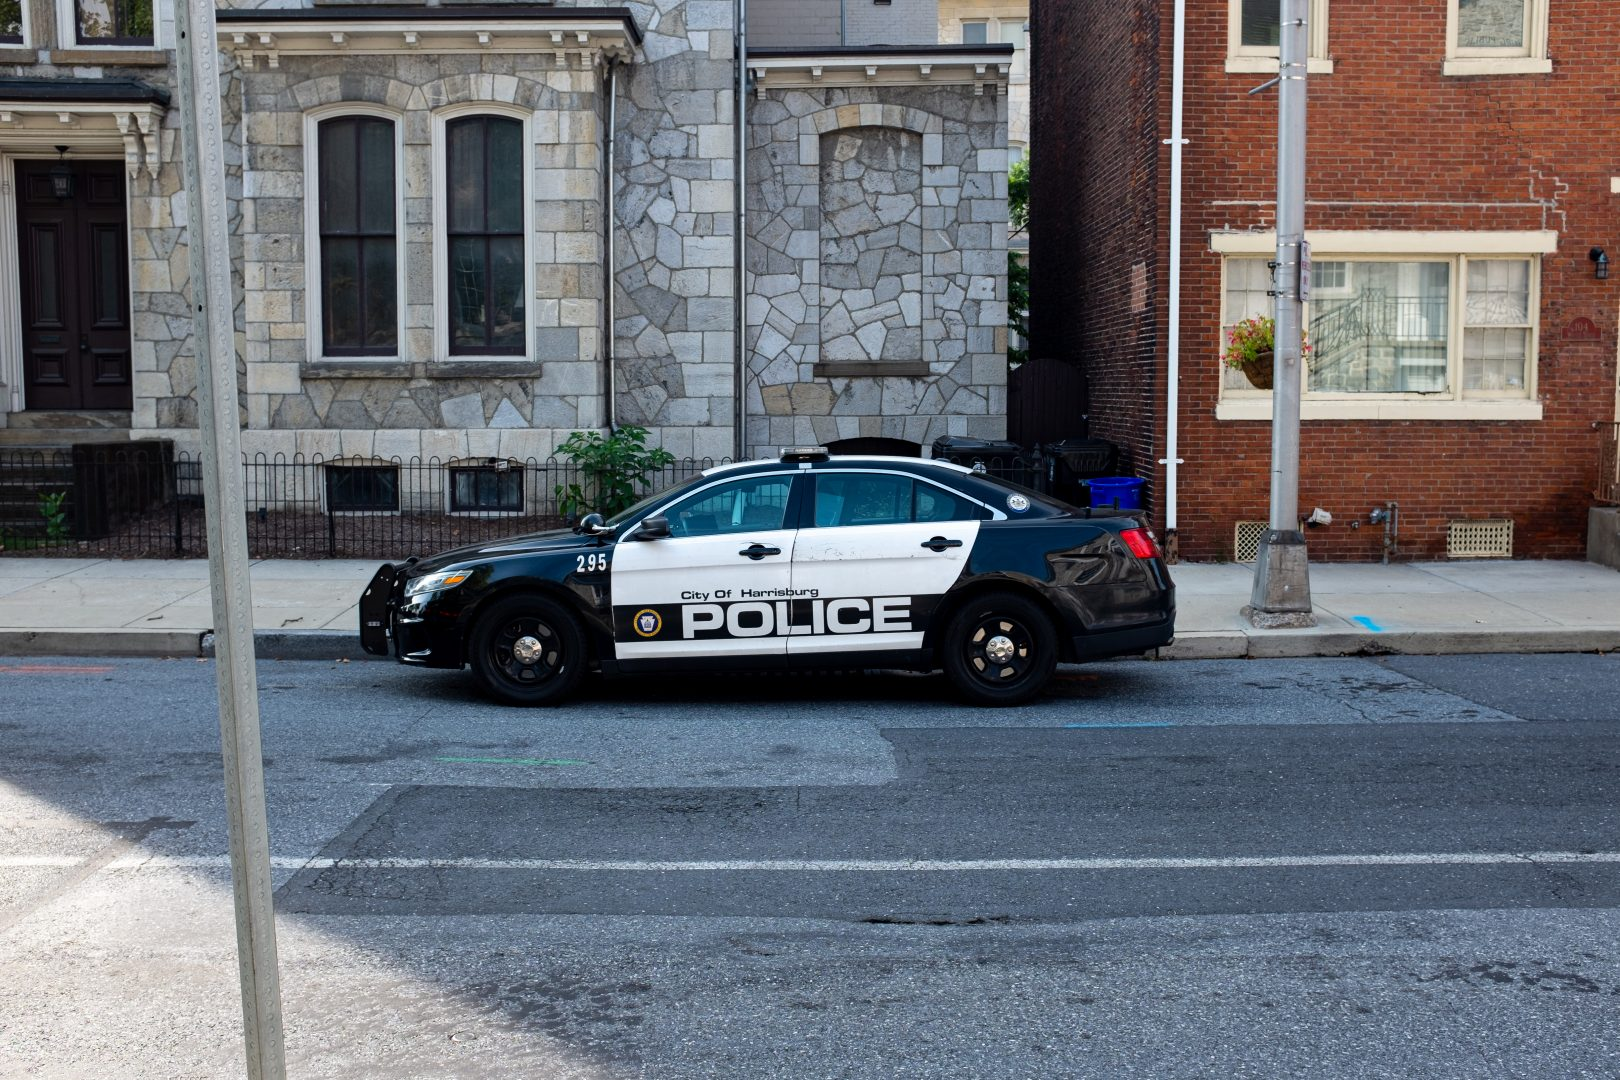 Midstate county implements co-responder law enforcement model | WITF